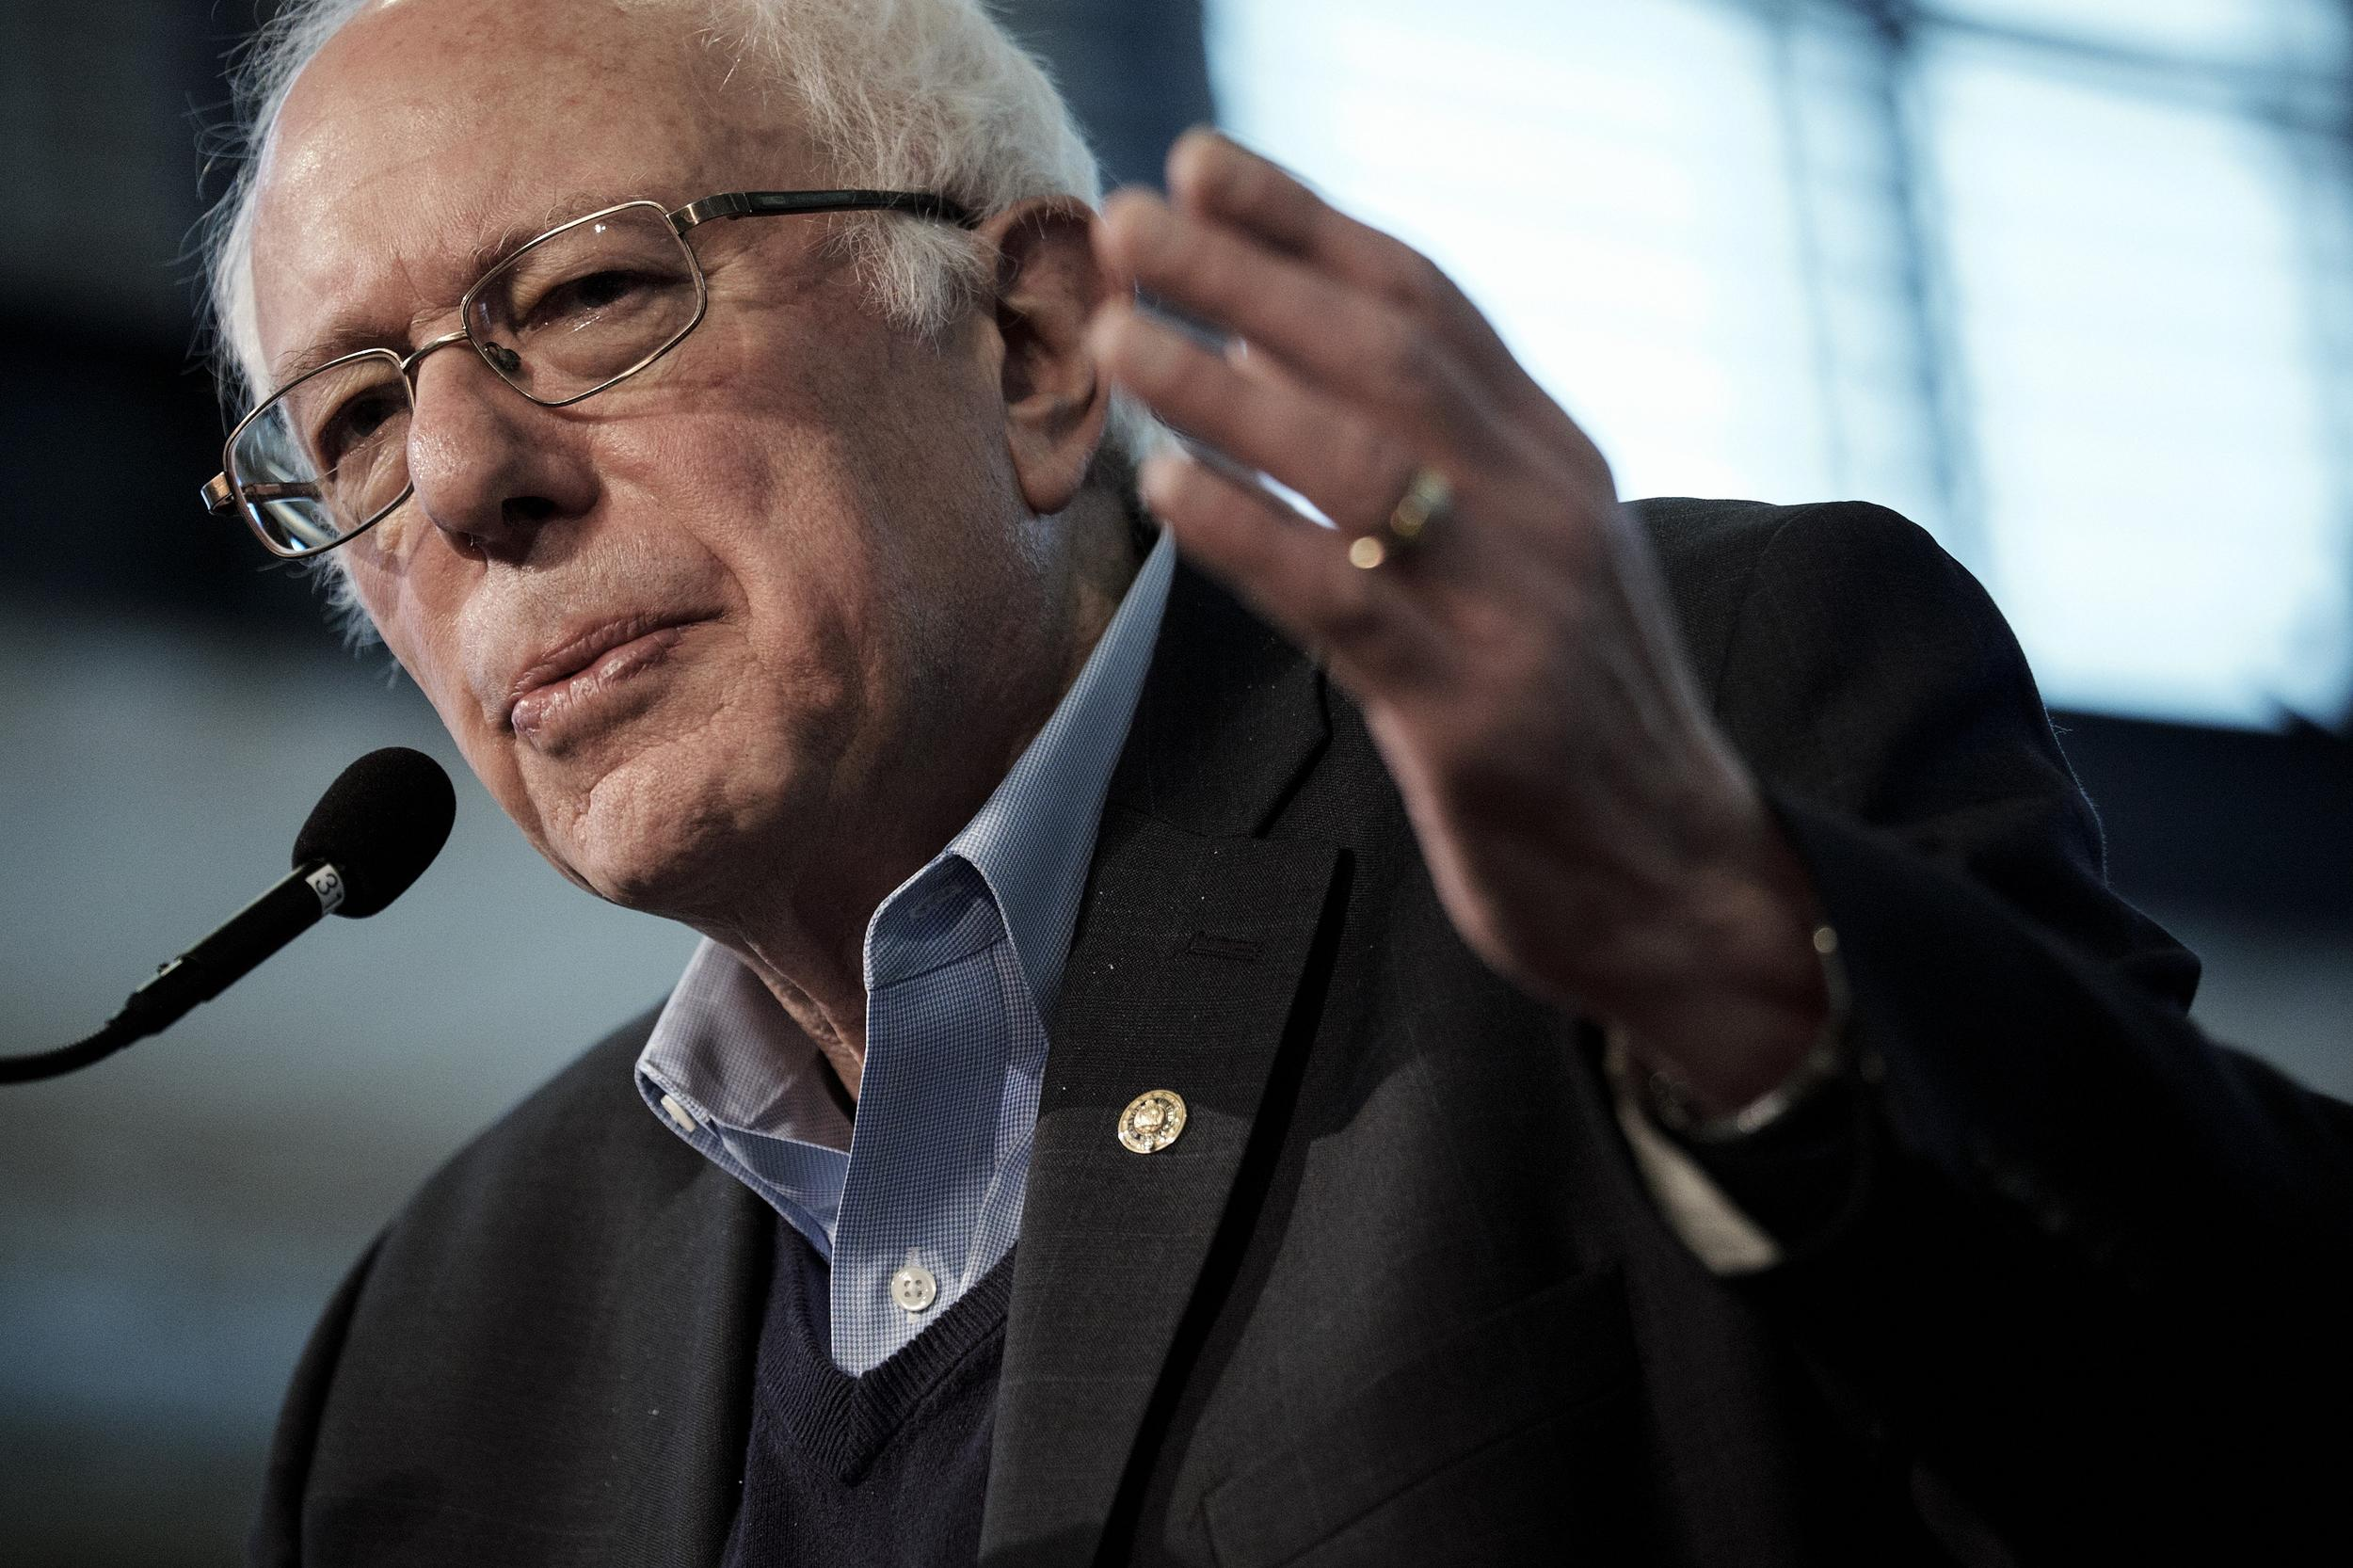 Senator Bernie Sanders, an independent from Vermont and 2016 Democratic presidential candidate, speaks during an event in Iowa Falls, Iowa, U.S., on Monday, Jan. 25, 2016. With a week to go until the Iowa caucuses and the Democratic presidential race there in a virtual dead heat, Hillary Clinton and Sanders are mapping out divergent paths toward winning the first votes of the nomination process. Photographer: T.J. Kirkpatrick/Bloomberg via Getty Images